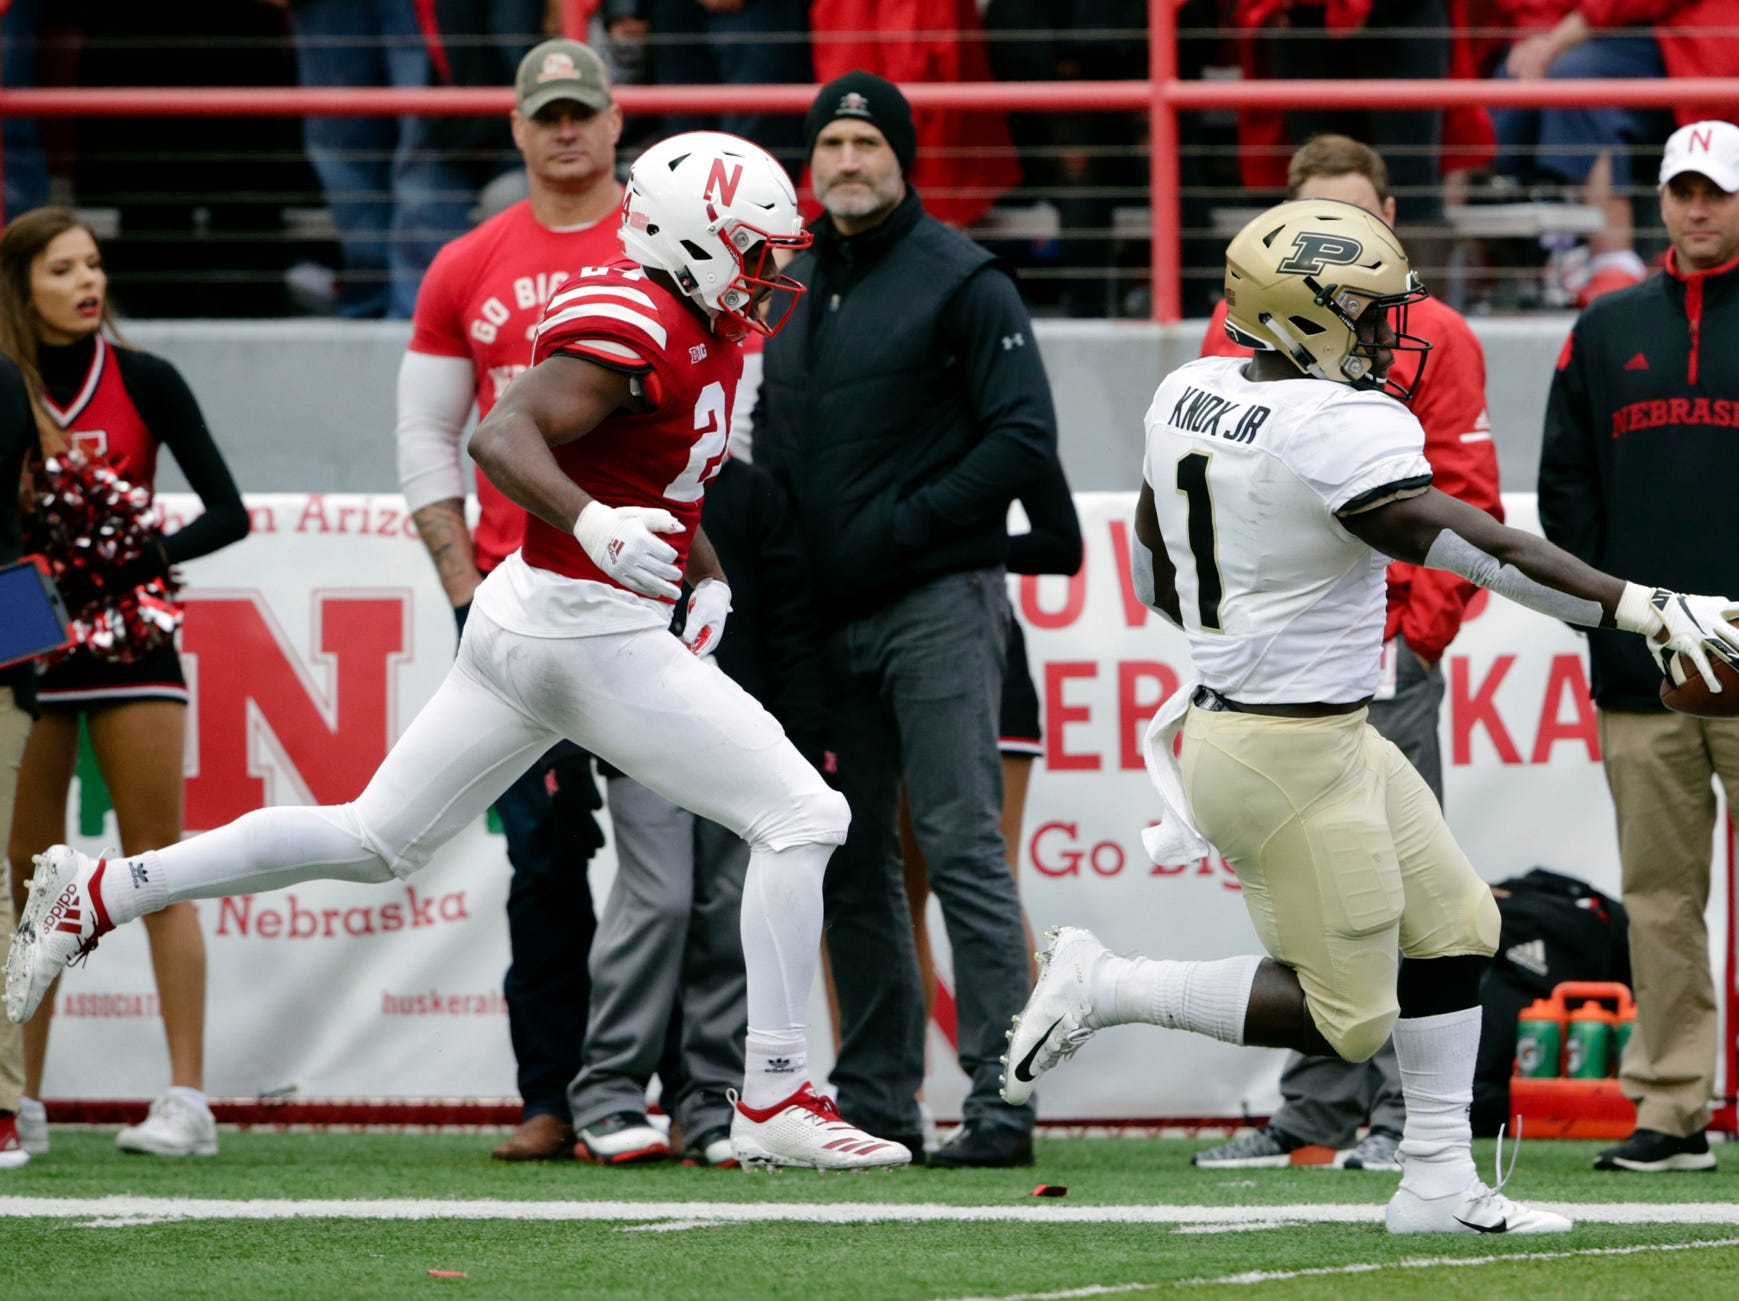 Purdue running back D.J. Knox (1) scores a touchdown ahead of Nebraska defensive back Aaron Williams (24) during the first half of an NCAA college football game in Lincoln, Neb., Saturday, Sept. 29, 2018.